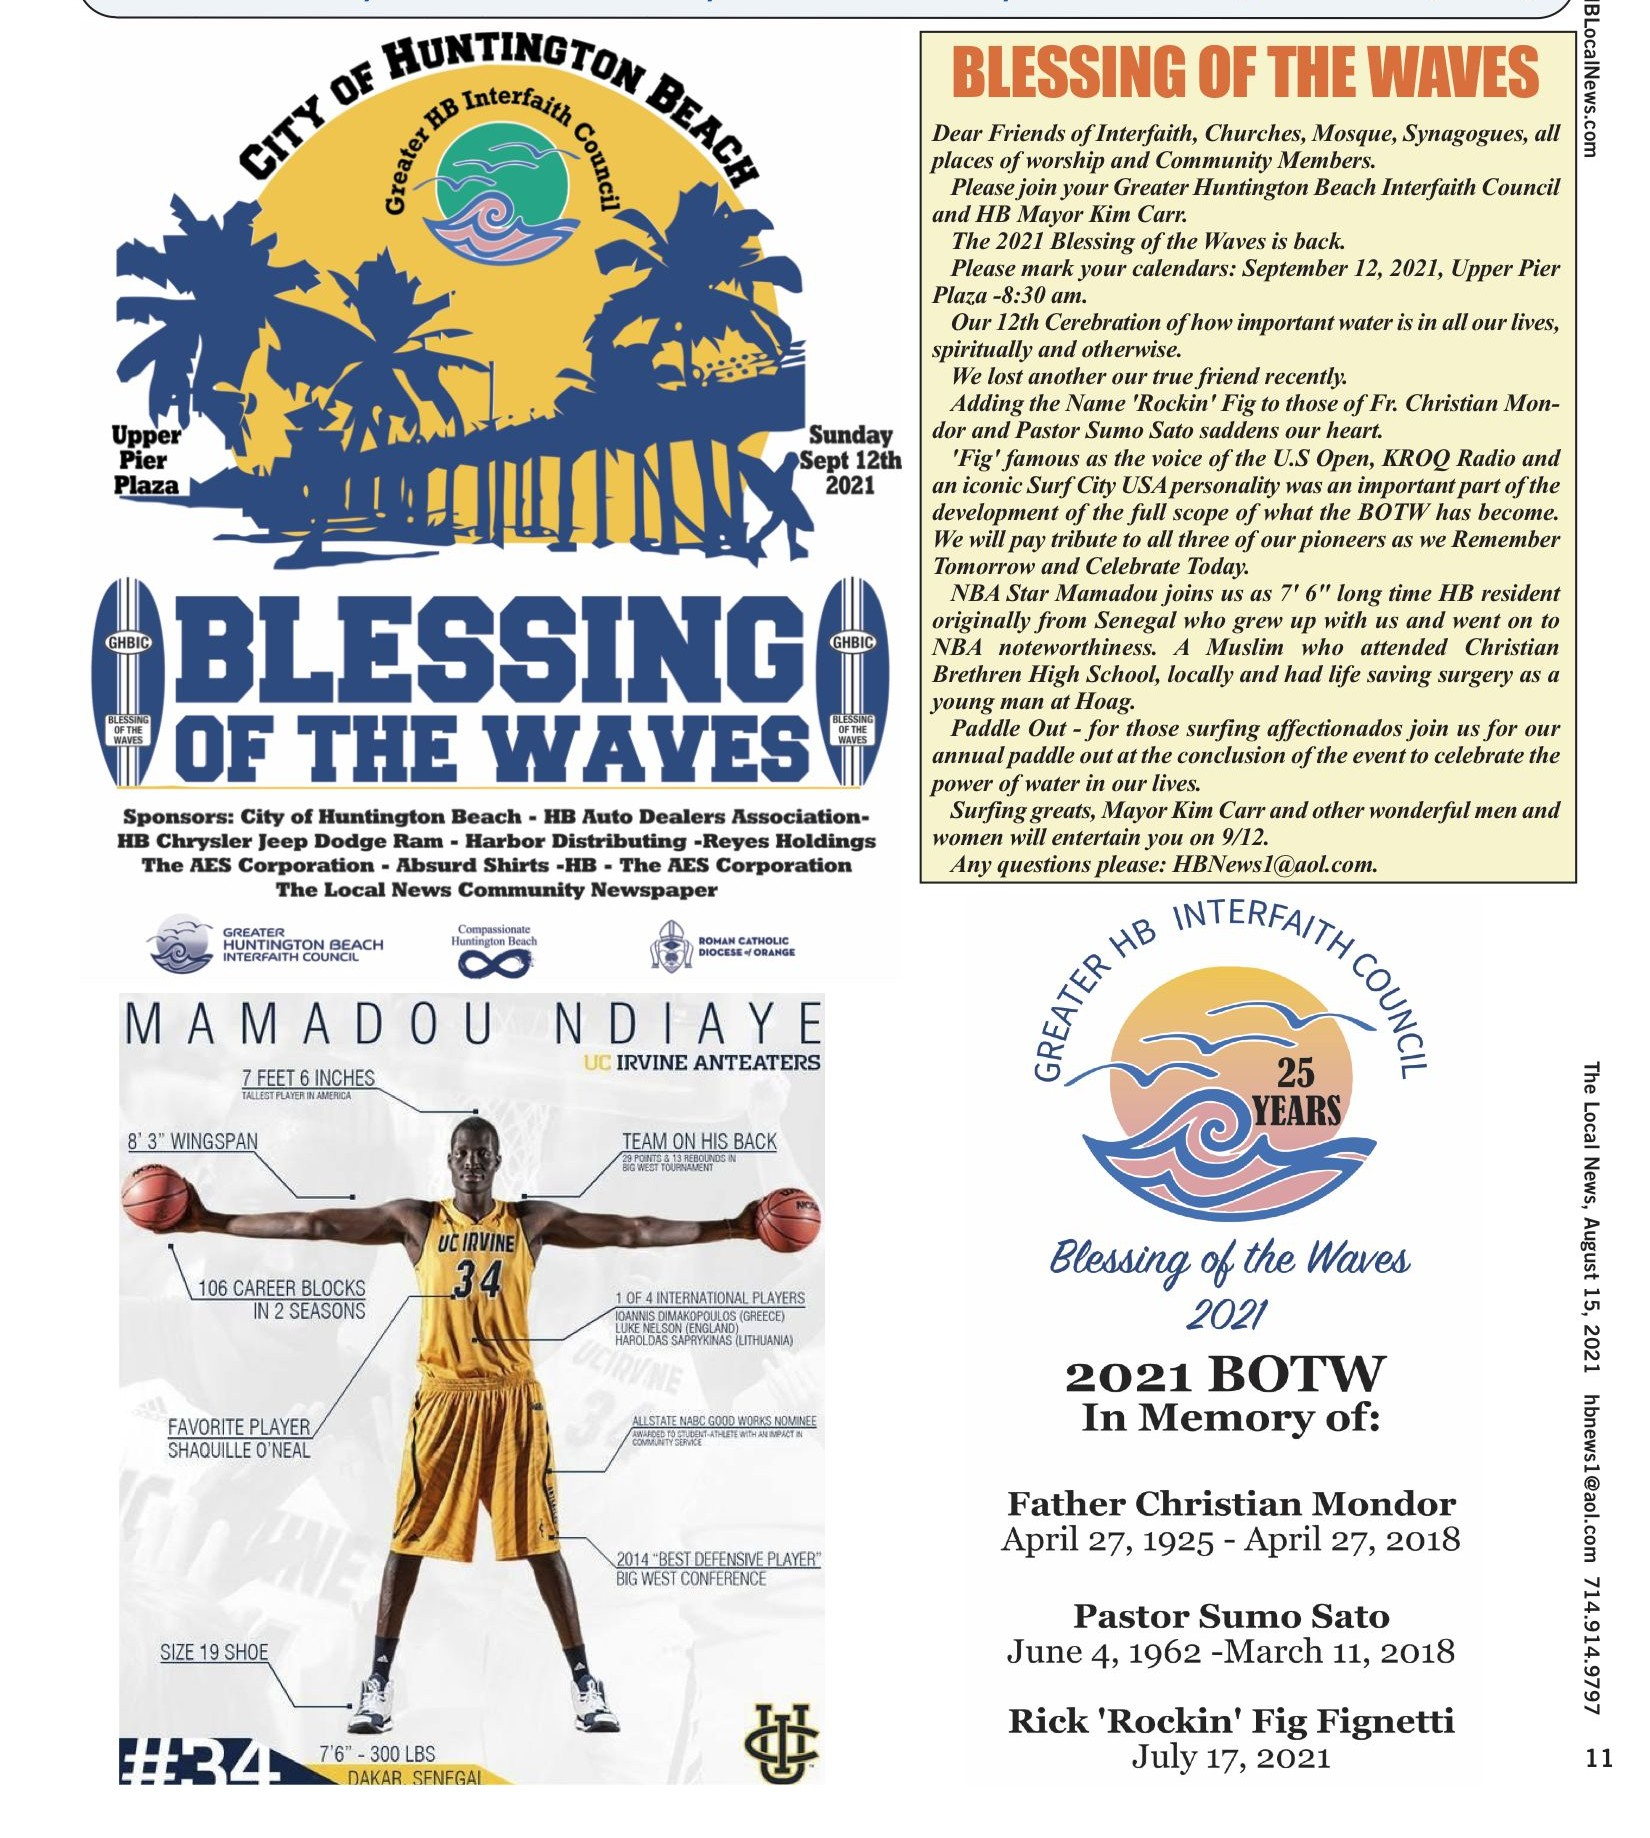 Blessing of waves invitation